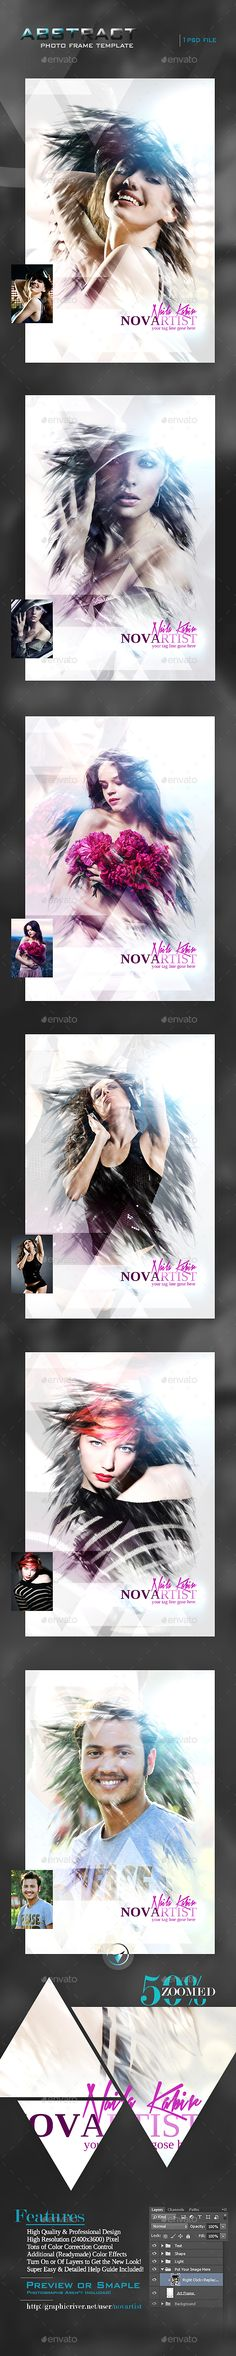 Abstract Photo Frame Template by novartist Abstract Photo Frame Template Specification: 1 PSD Files! Frame Template, Cover Template, Templates, Photoshop Photography, Artistic Photography, Art Photography, Photoshop Effects, Photoshop Tips, Instagram Banner